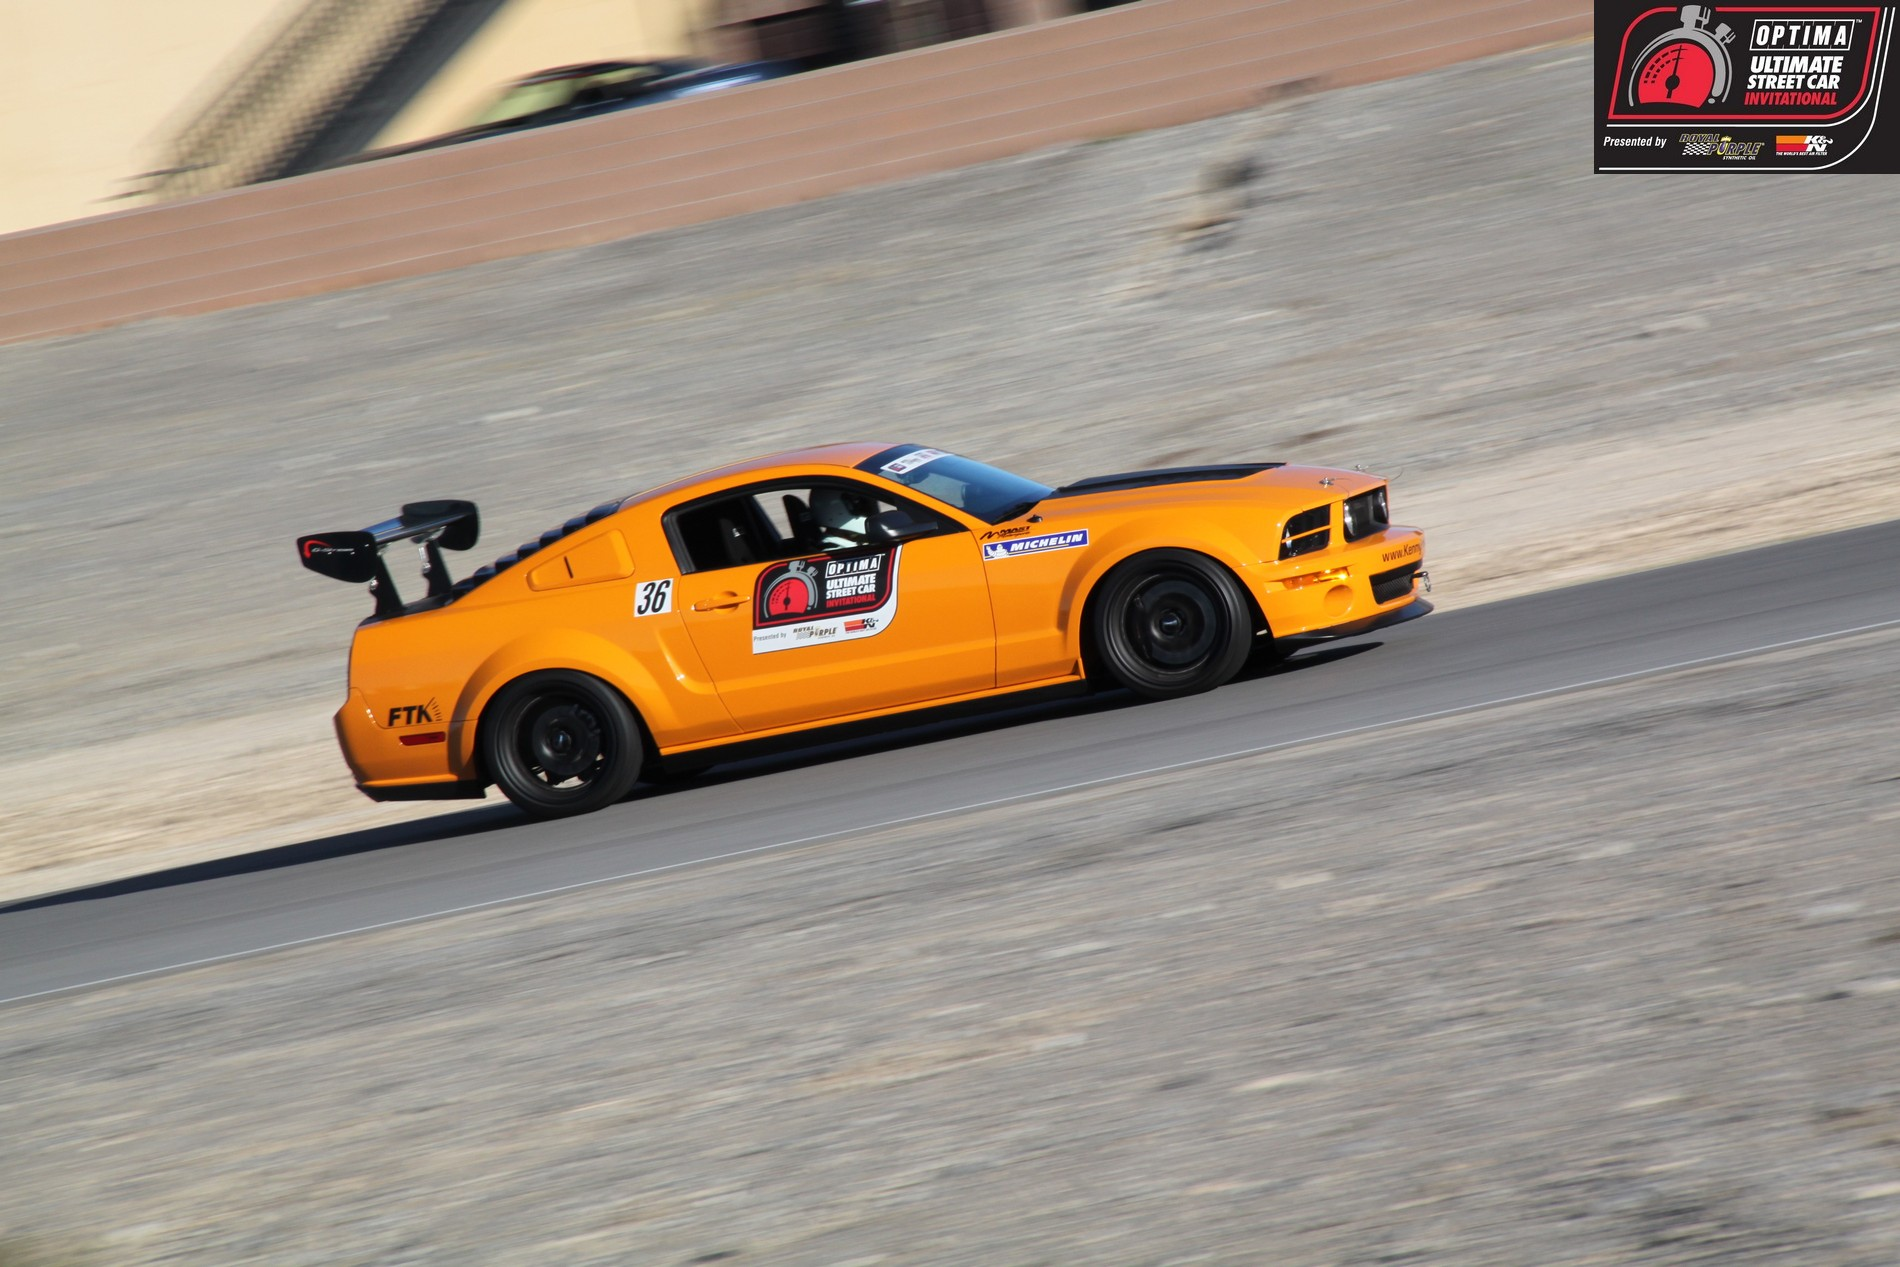 OUSCI Competitor Karl Dunn's 2007 Parnelli Jones Ford Mustang